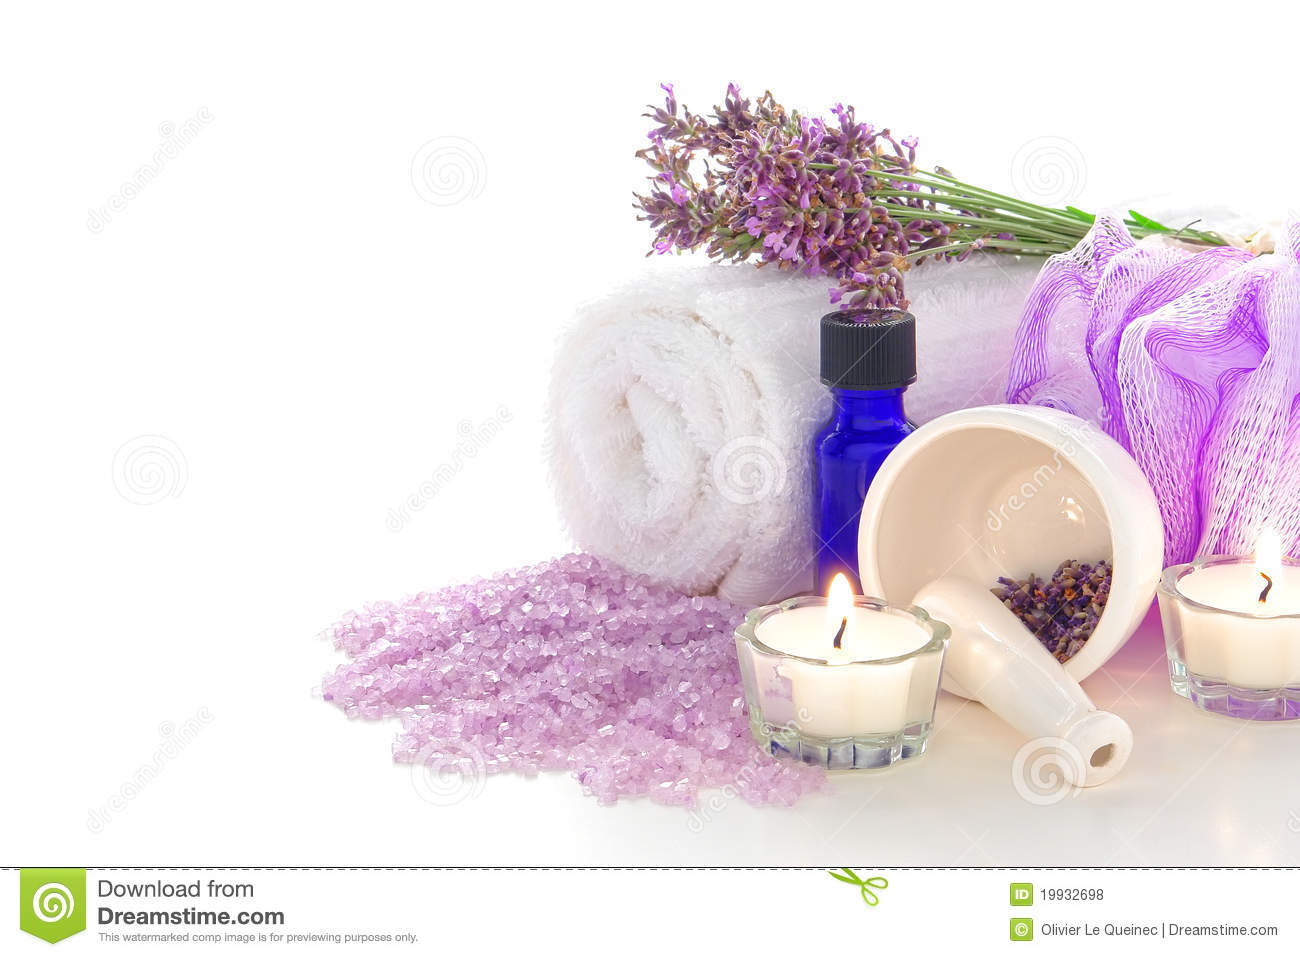 Lavender Aromatherapy Treatment Kit in a Spa